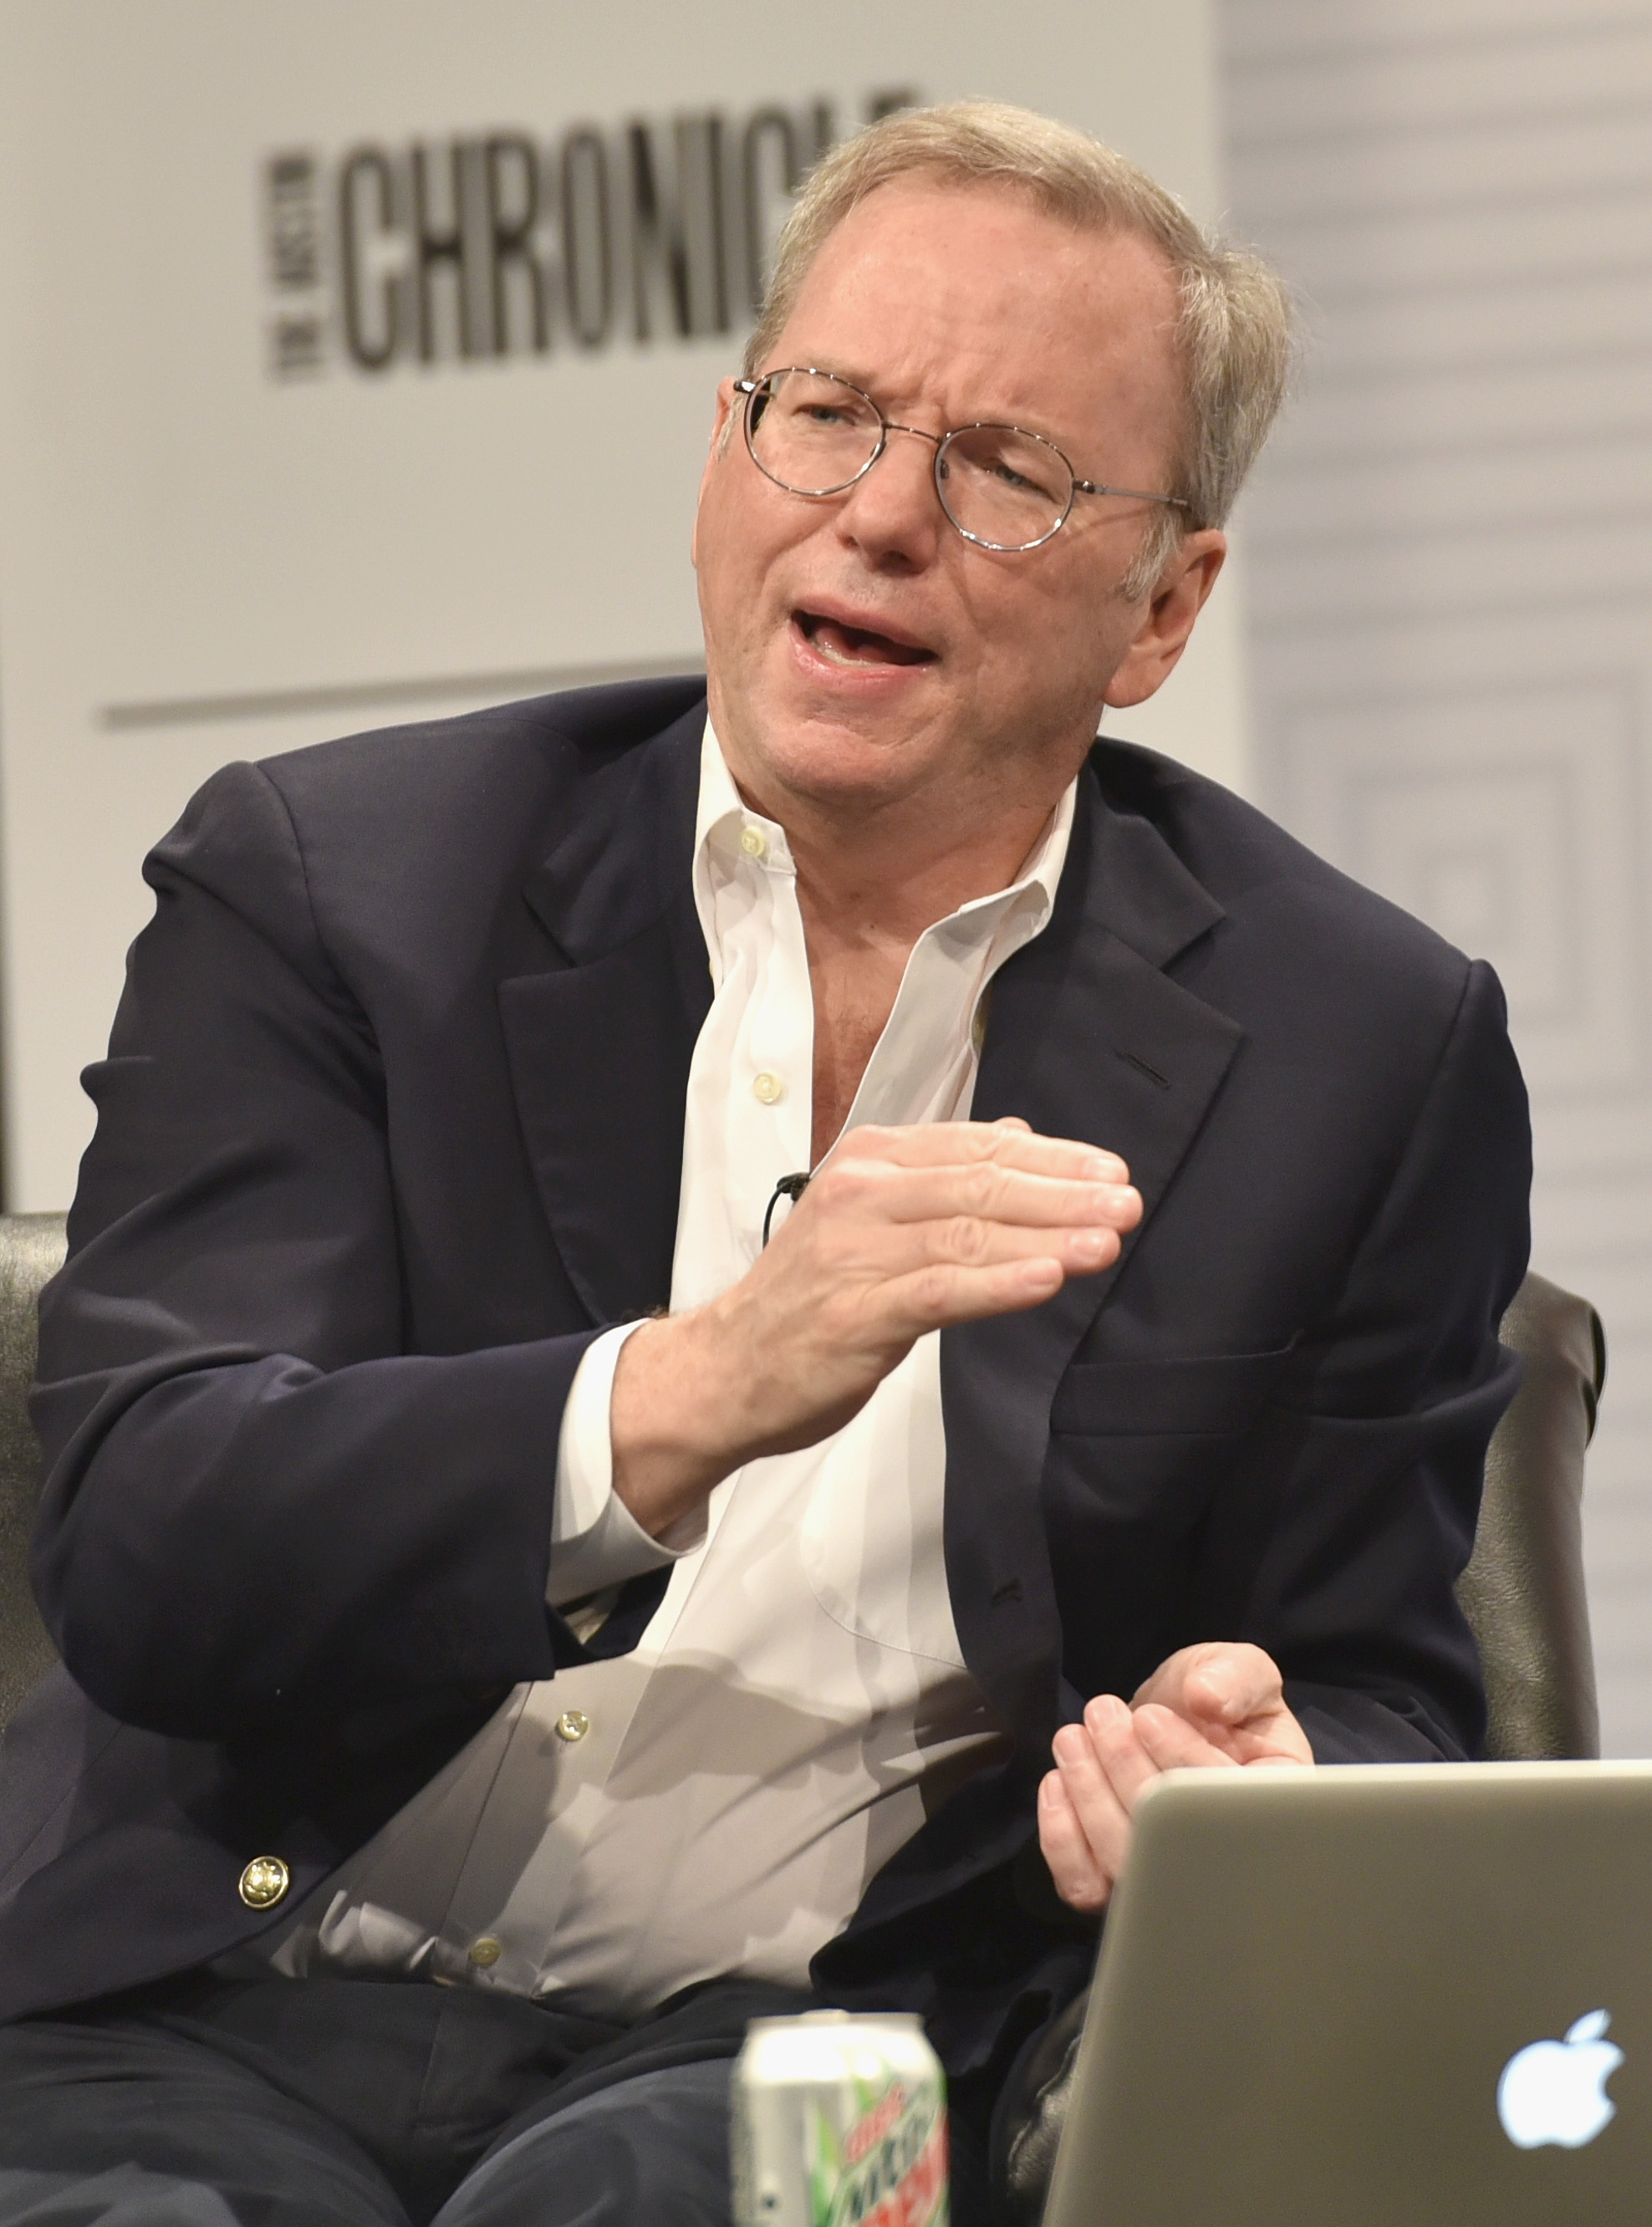 Eric Schmidt, Executive Chairman of Google speaks onstage at 'How Innovation Happens' during the 2015 SXSW Music, Film + Interactive Festival at Austin Convention Center on March 16, 2015 in Austin, Texas.  (Amy E. Price/Getty Images for SXSW)